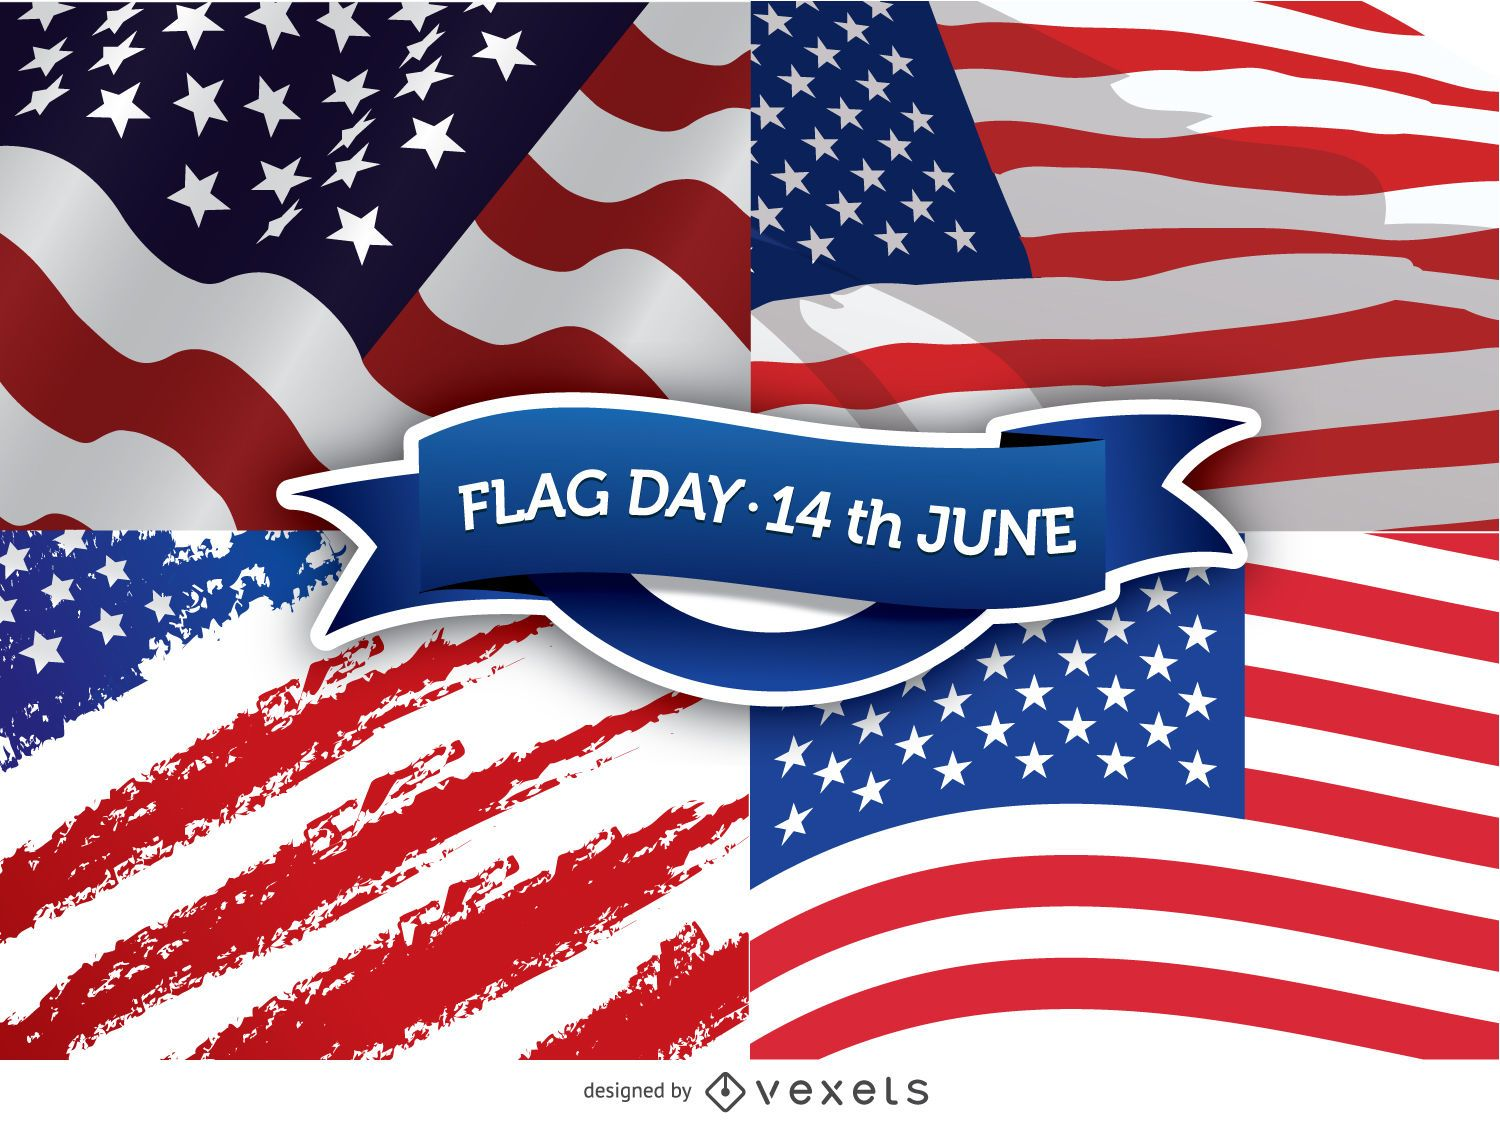 Flag Day - 14th June